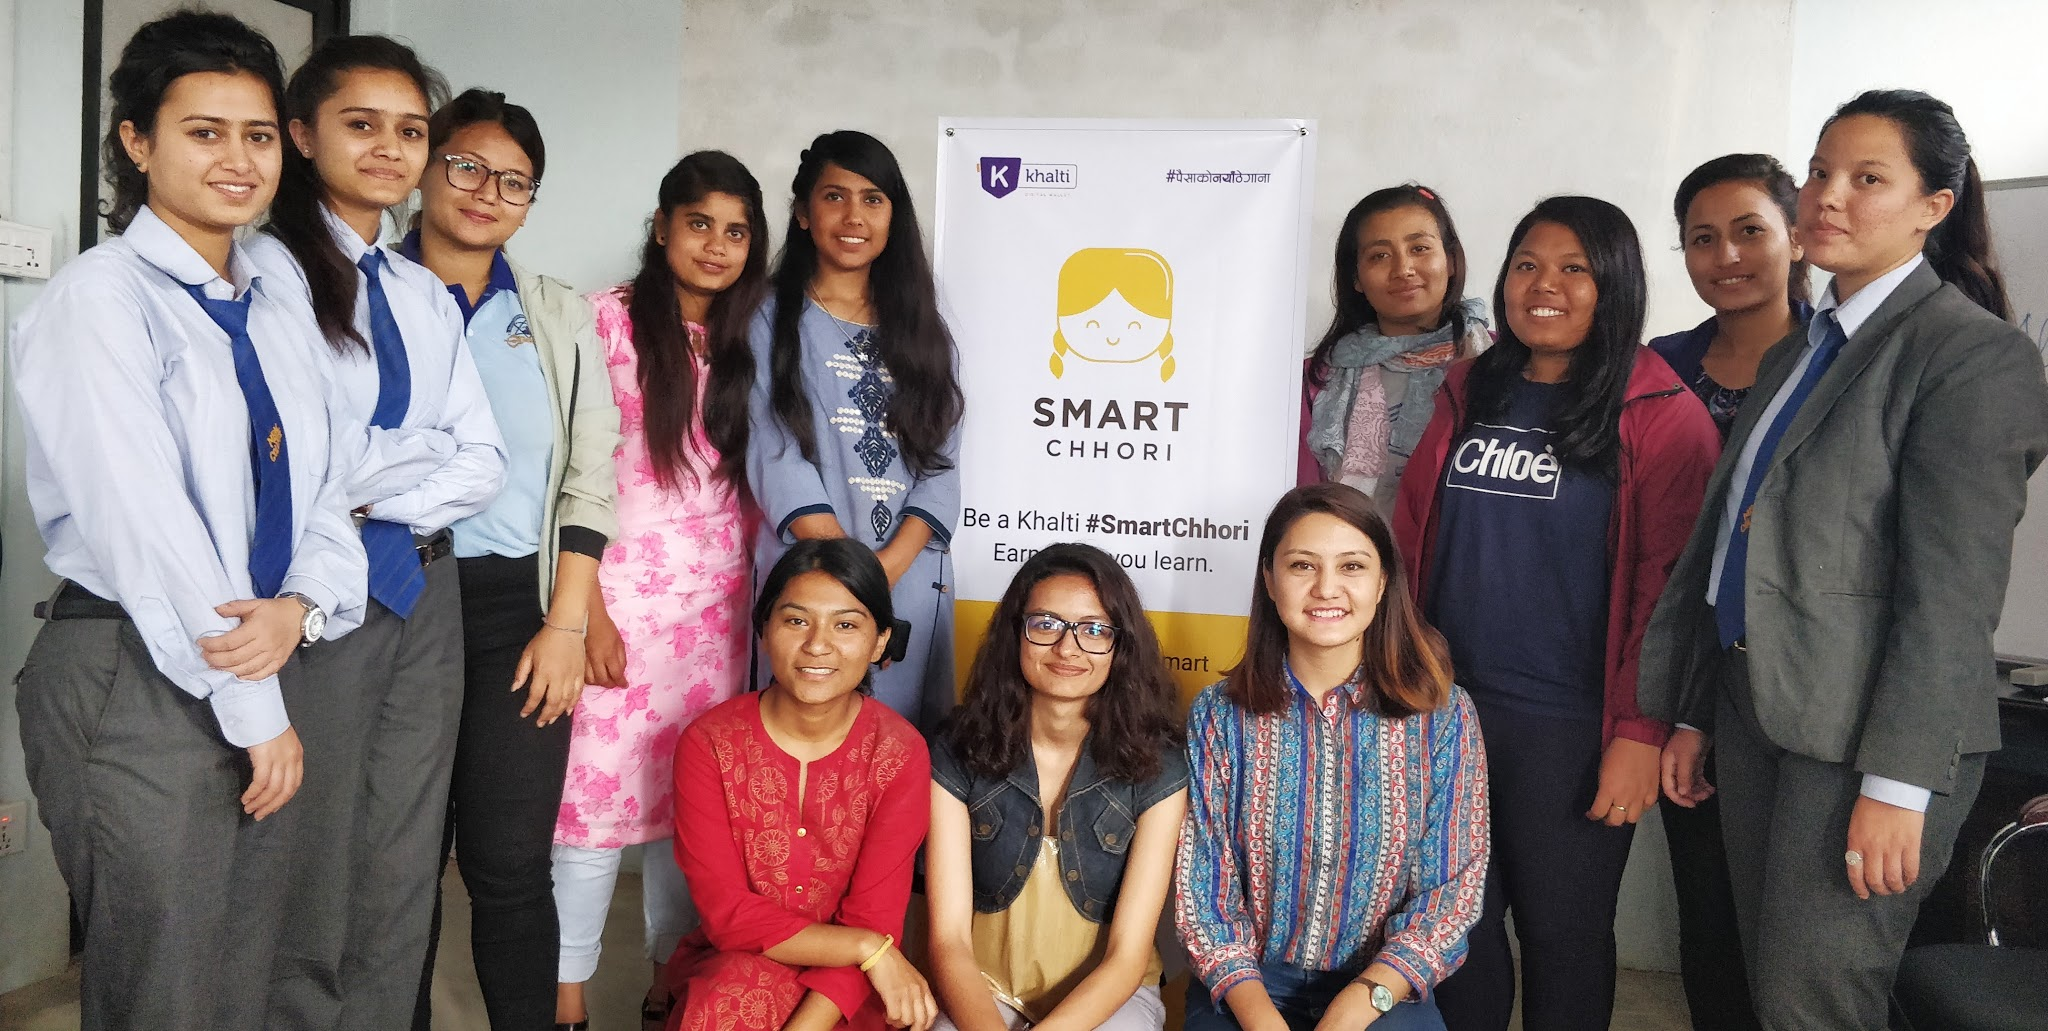 Khalti coming up with Smart Chhori campaign in Nepal